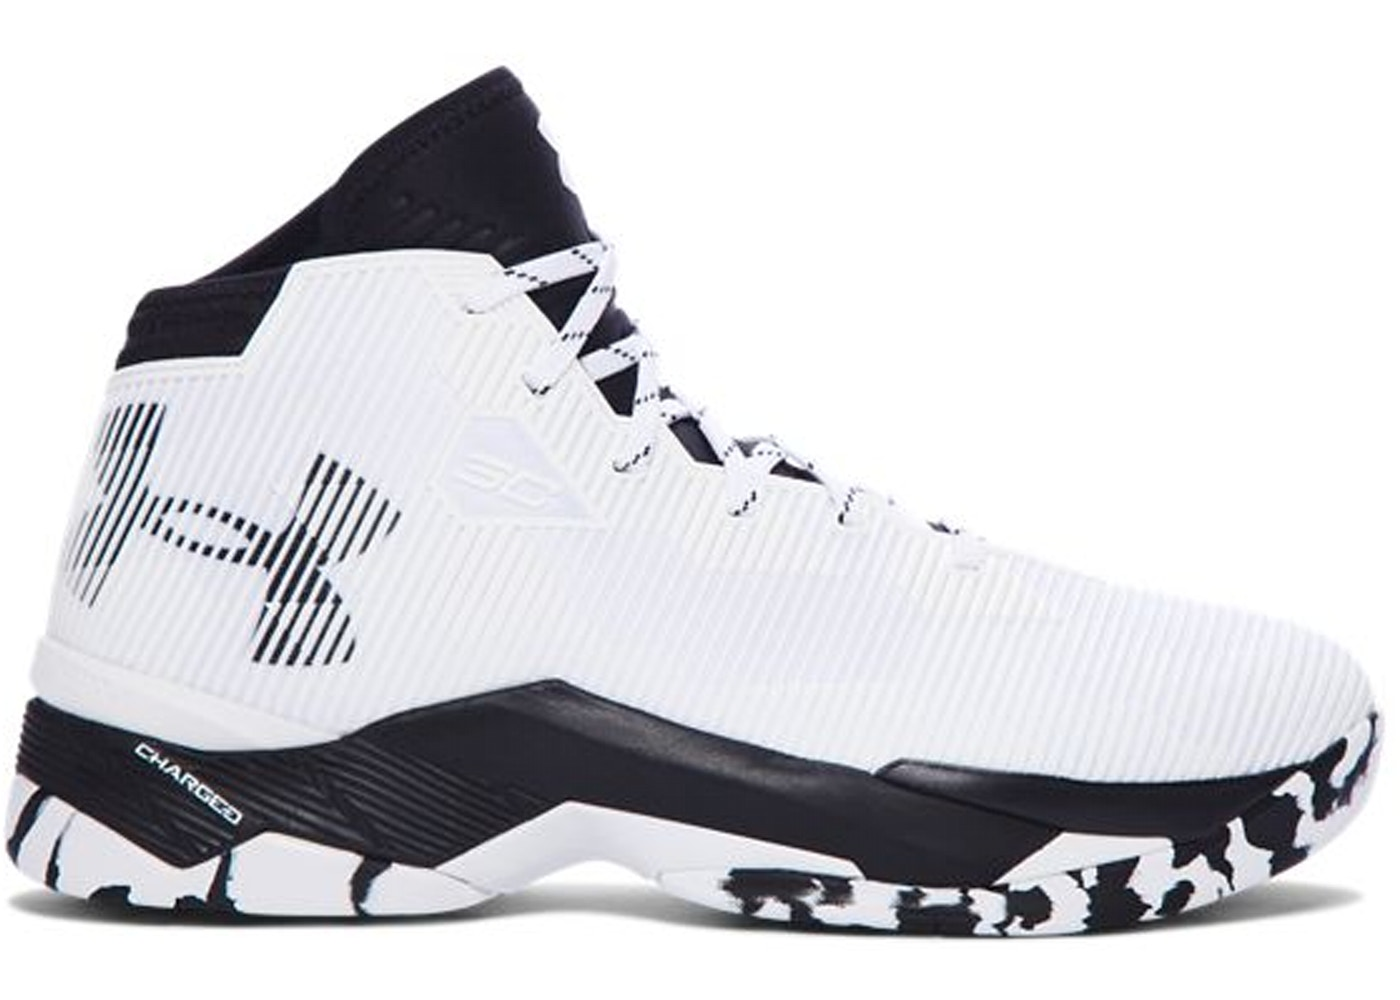 03306733f94f Under Armour Curry 2.5 White Black - 1274425-104